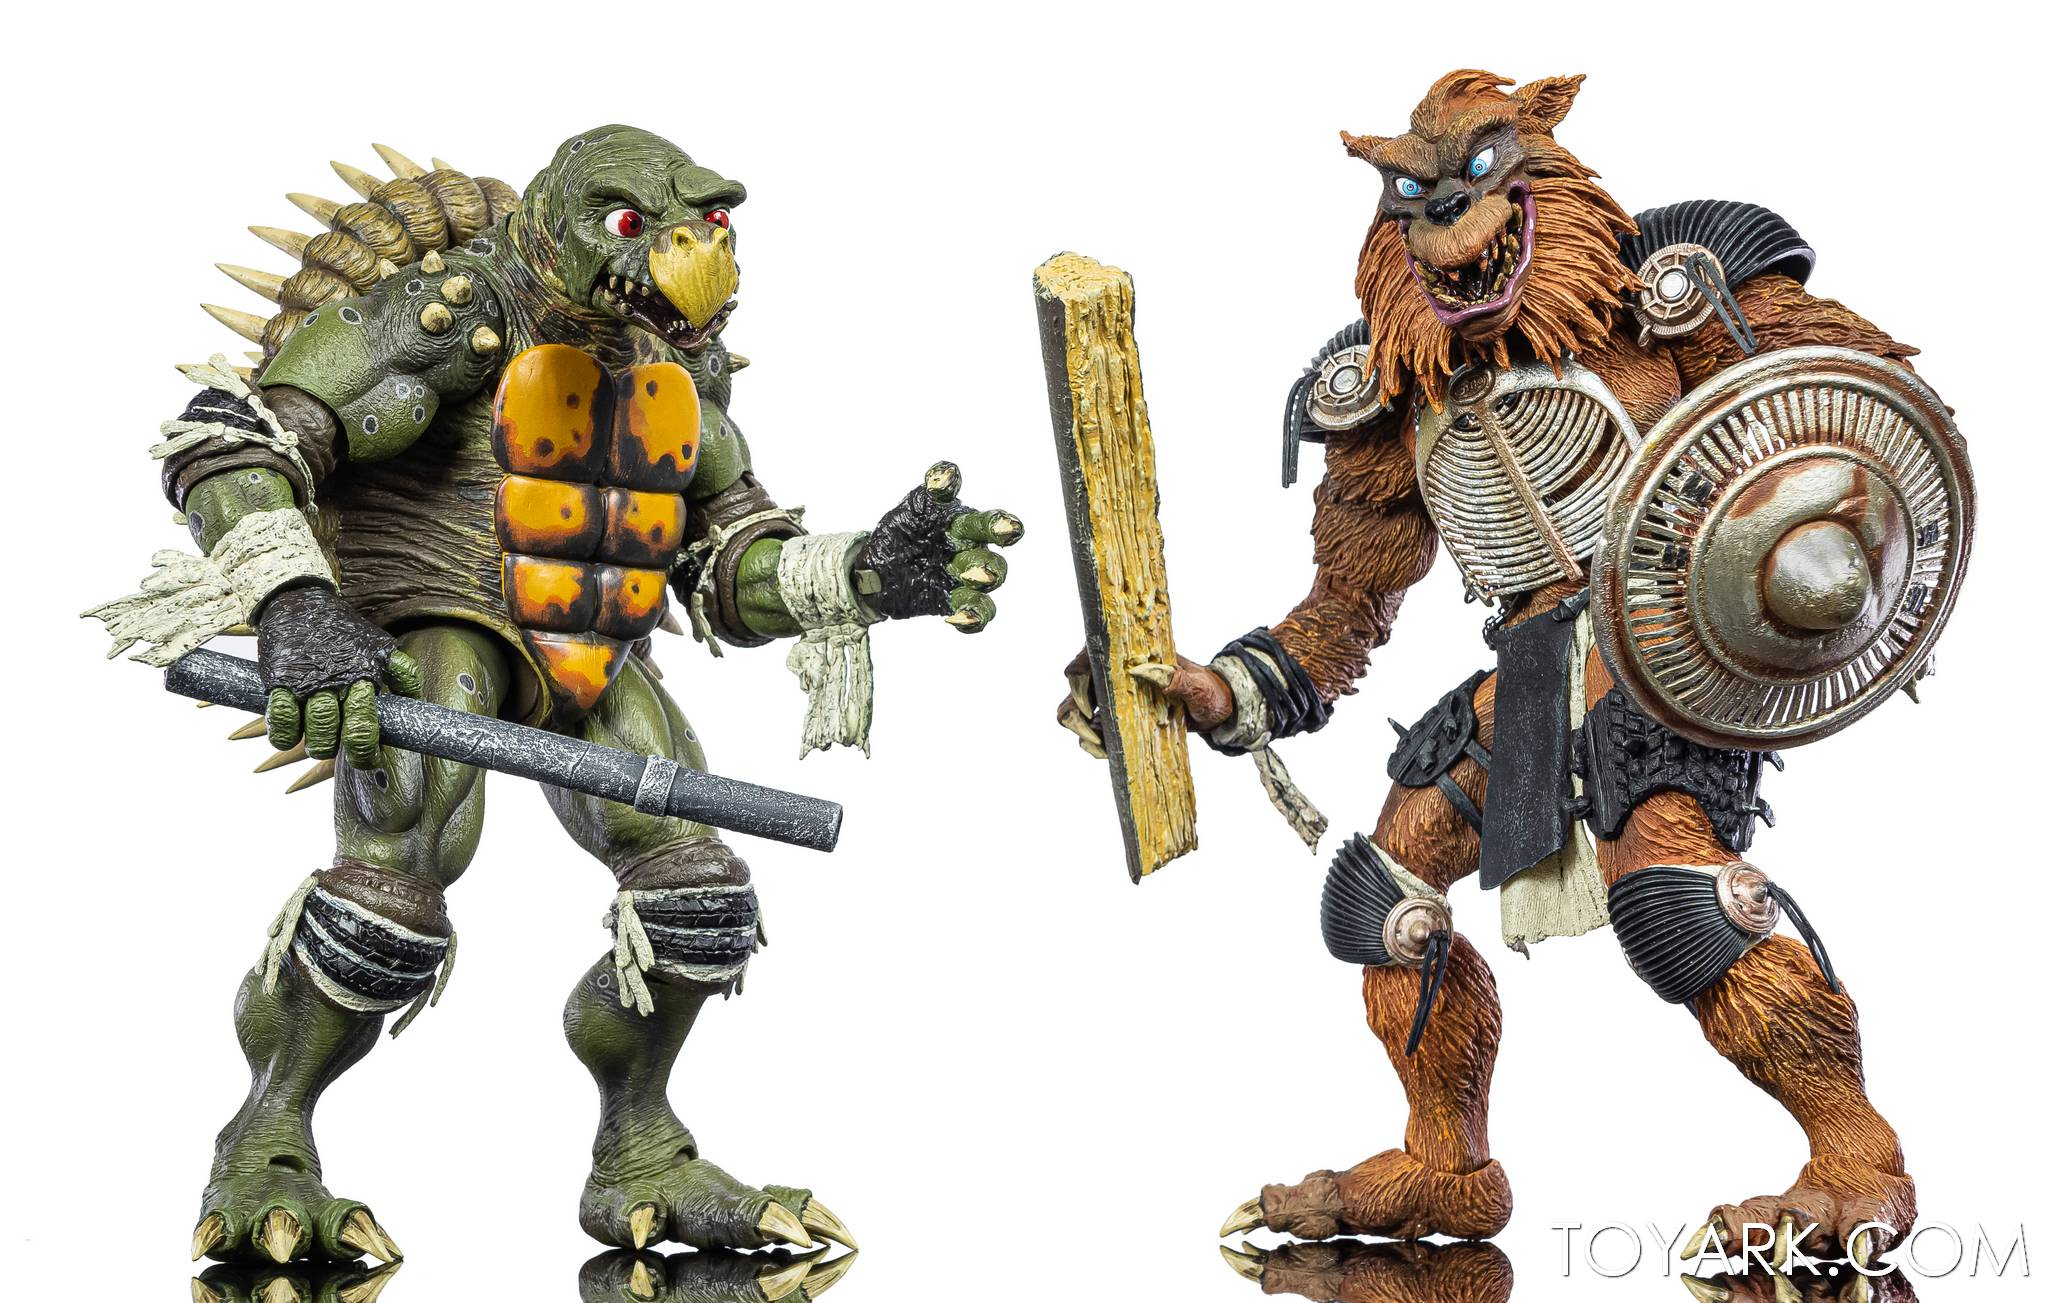 https://news.toyark.com/wp-content/uploads/sites/4/2021/03/NECA-Tokka-and-Rahzar-TMNT-II-018.jpg